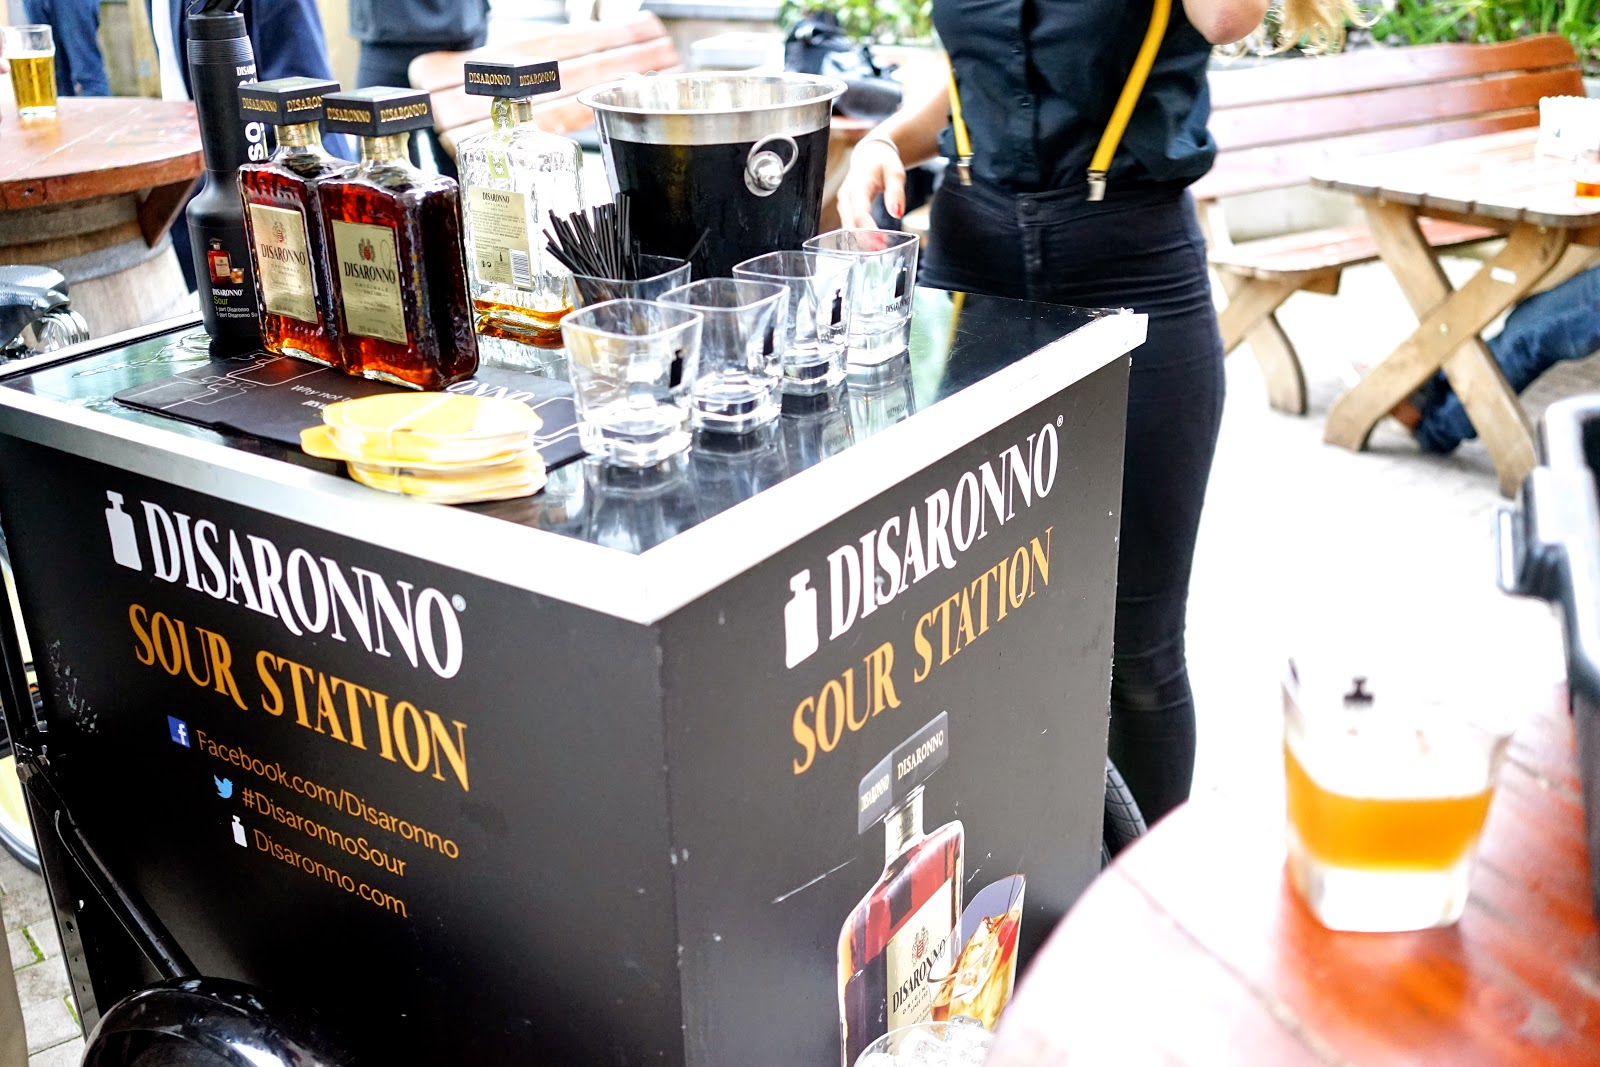 Disaronno Sour station